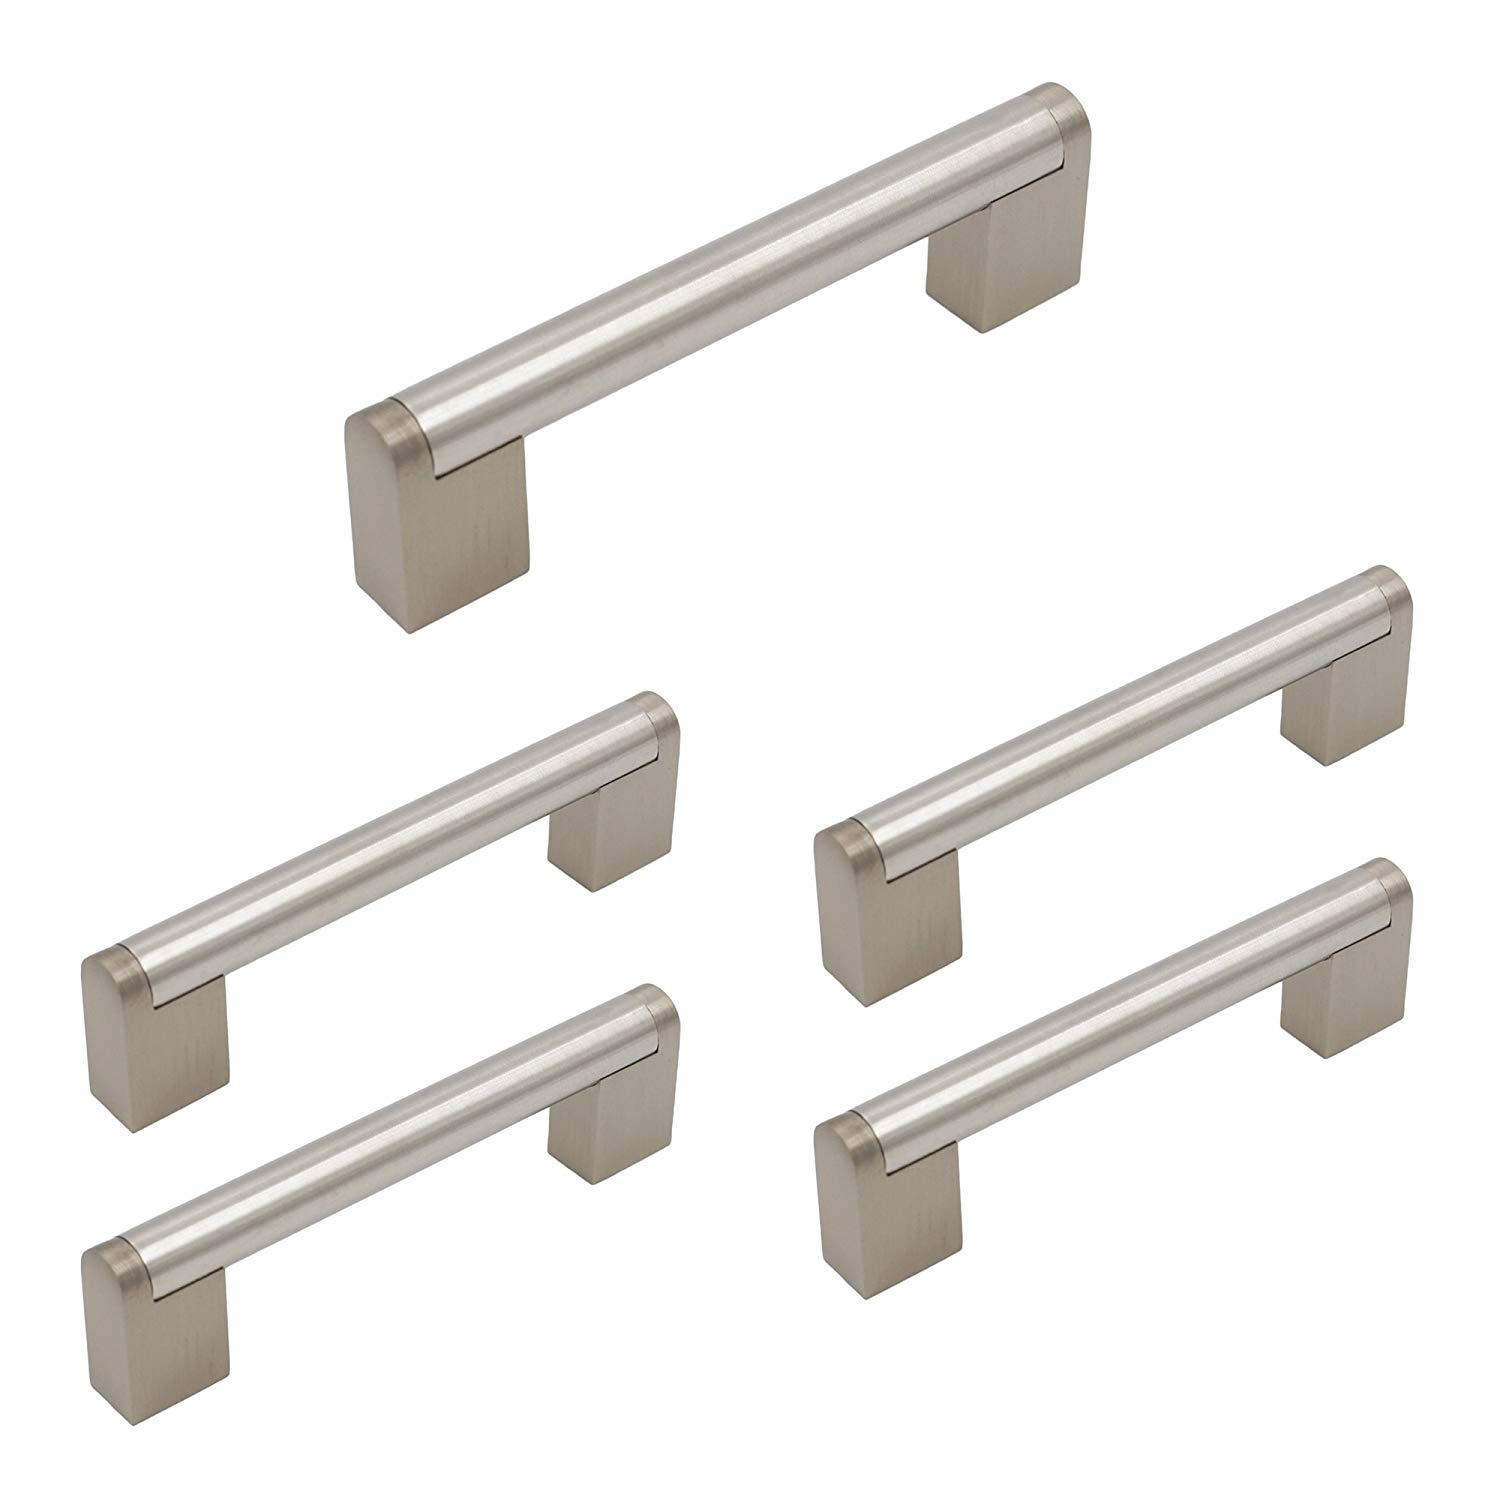 homdiy Cabinet Handles Brushed Nickel 5 Pack 3-3/4 in Hole Center HDJ14BSS European Style Boss Bar Cabinet Hardware Brushed Nickel Drawer Pulls Stainless Steel Kitchen Door Handles